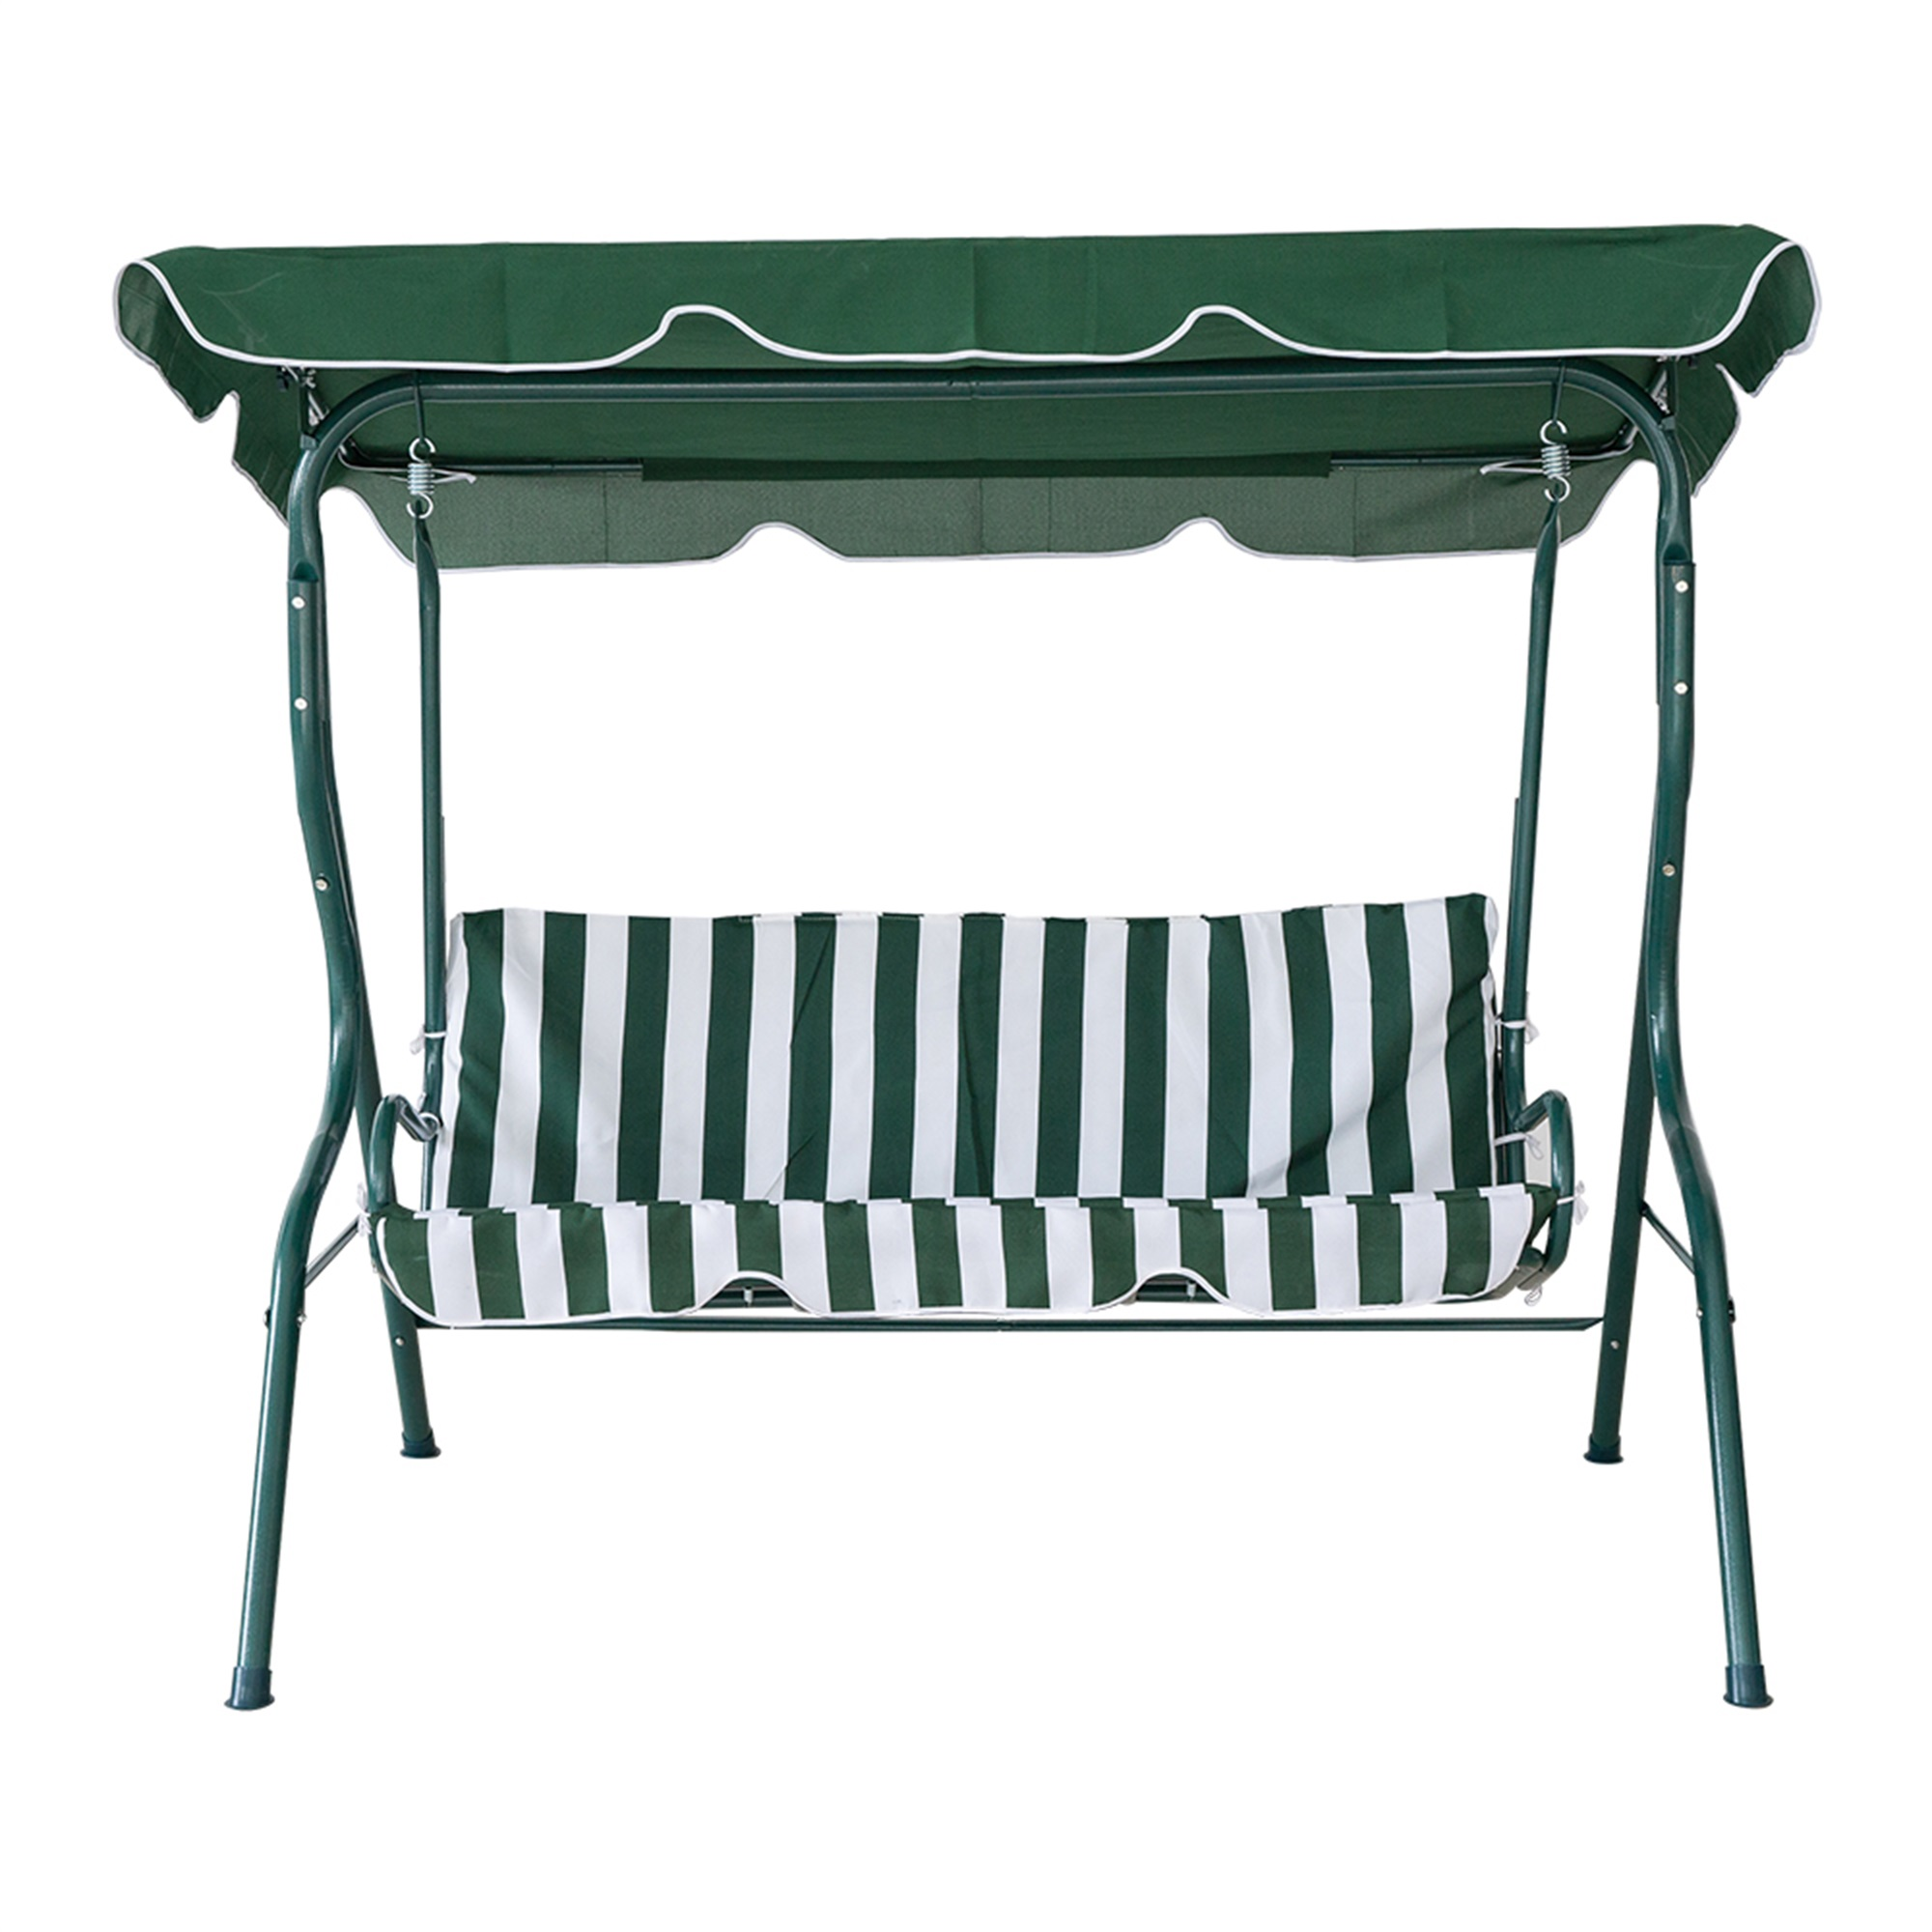 Lucky Tree Outside Rocking Chair Lounge Steel Chair Furniture with Cushion Patio Seating,Green